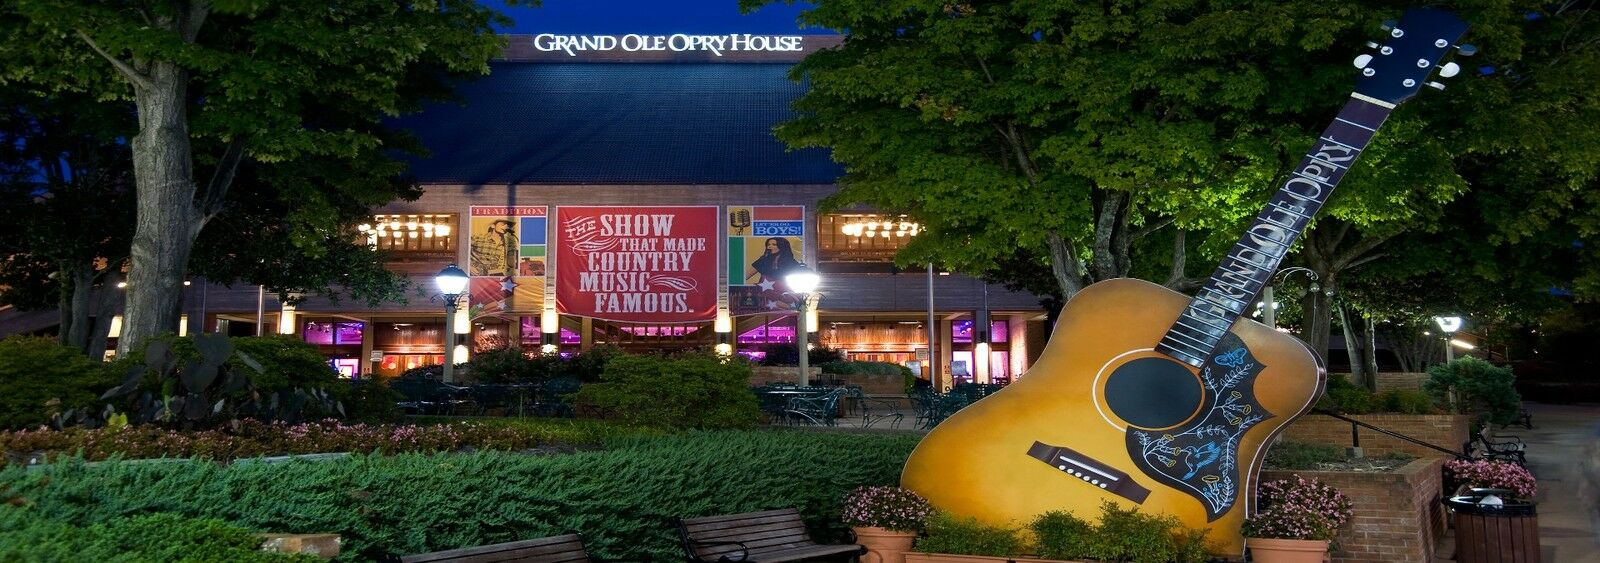 Grand Ole Opry with Terri Clark, Charlie Daniels Band, and more